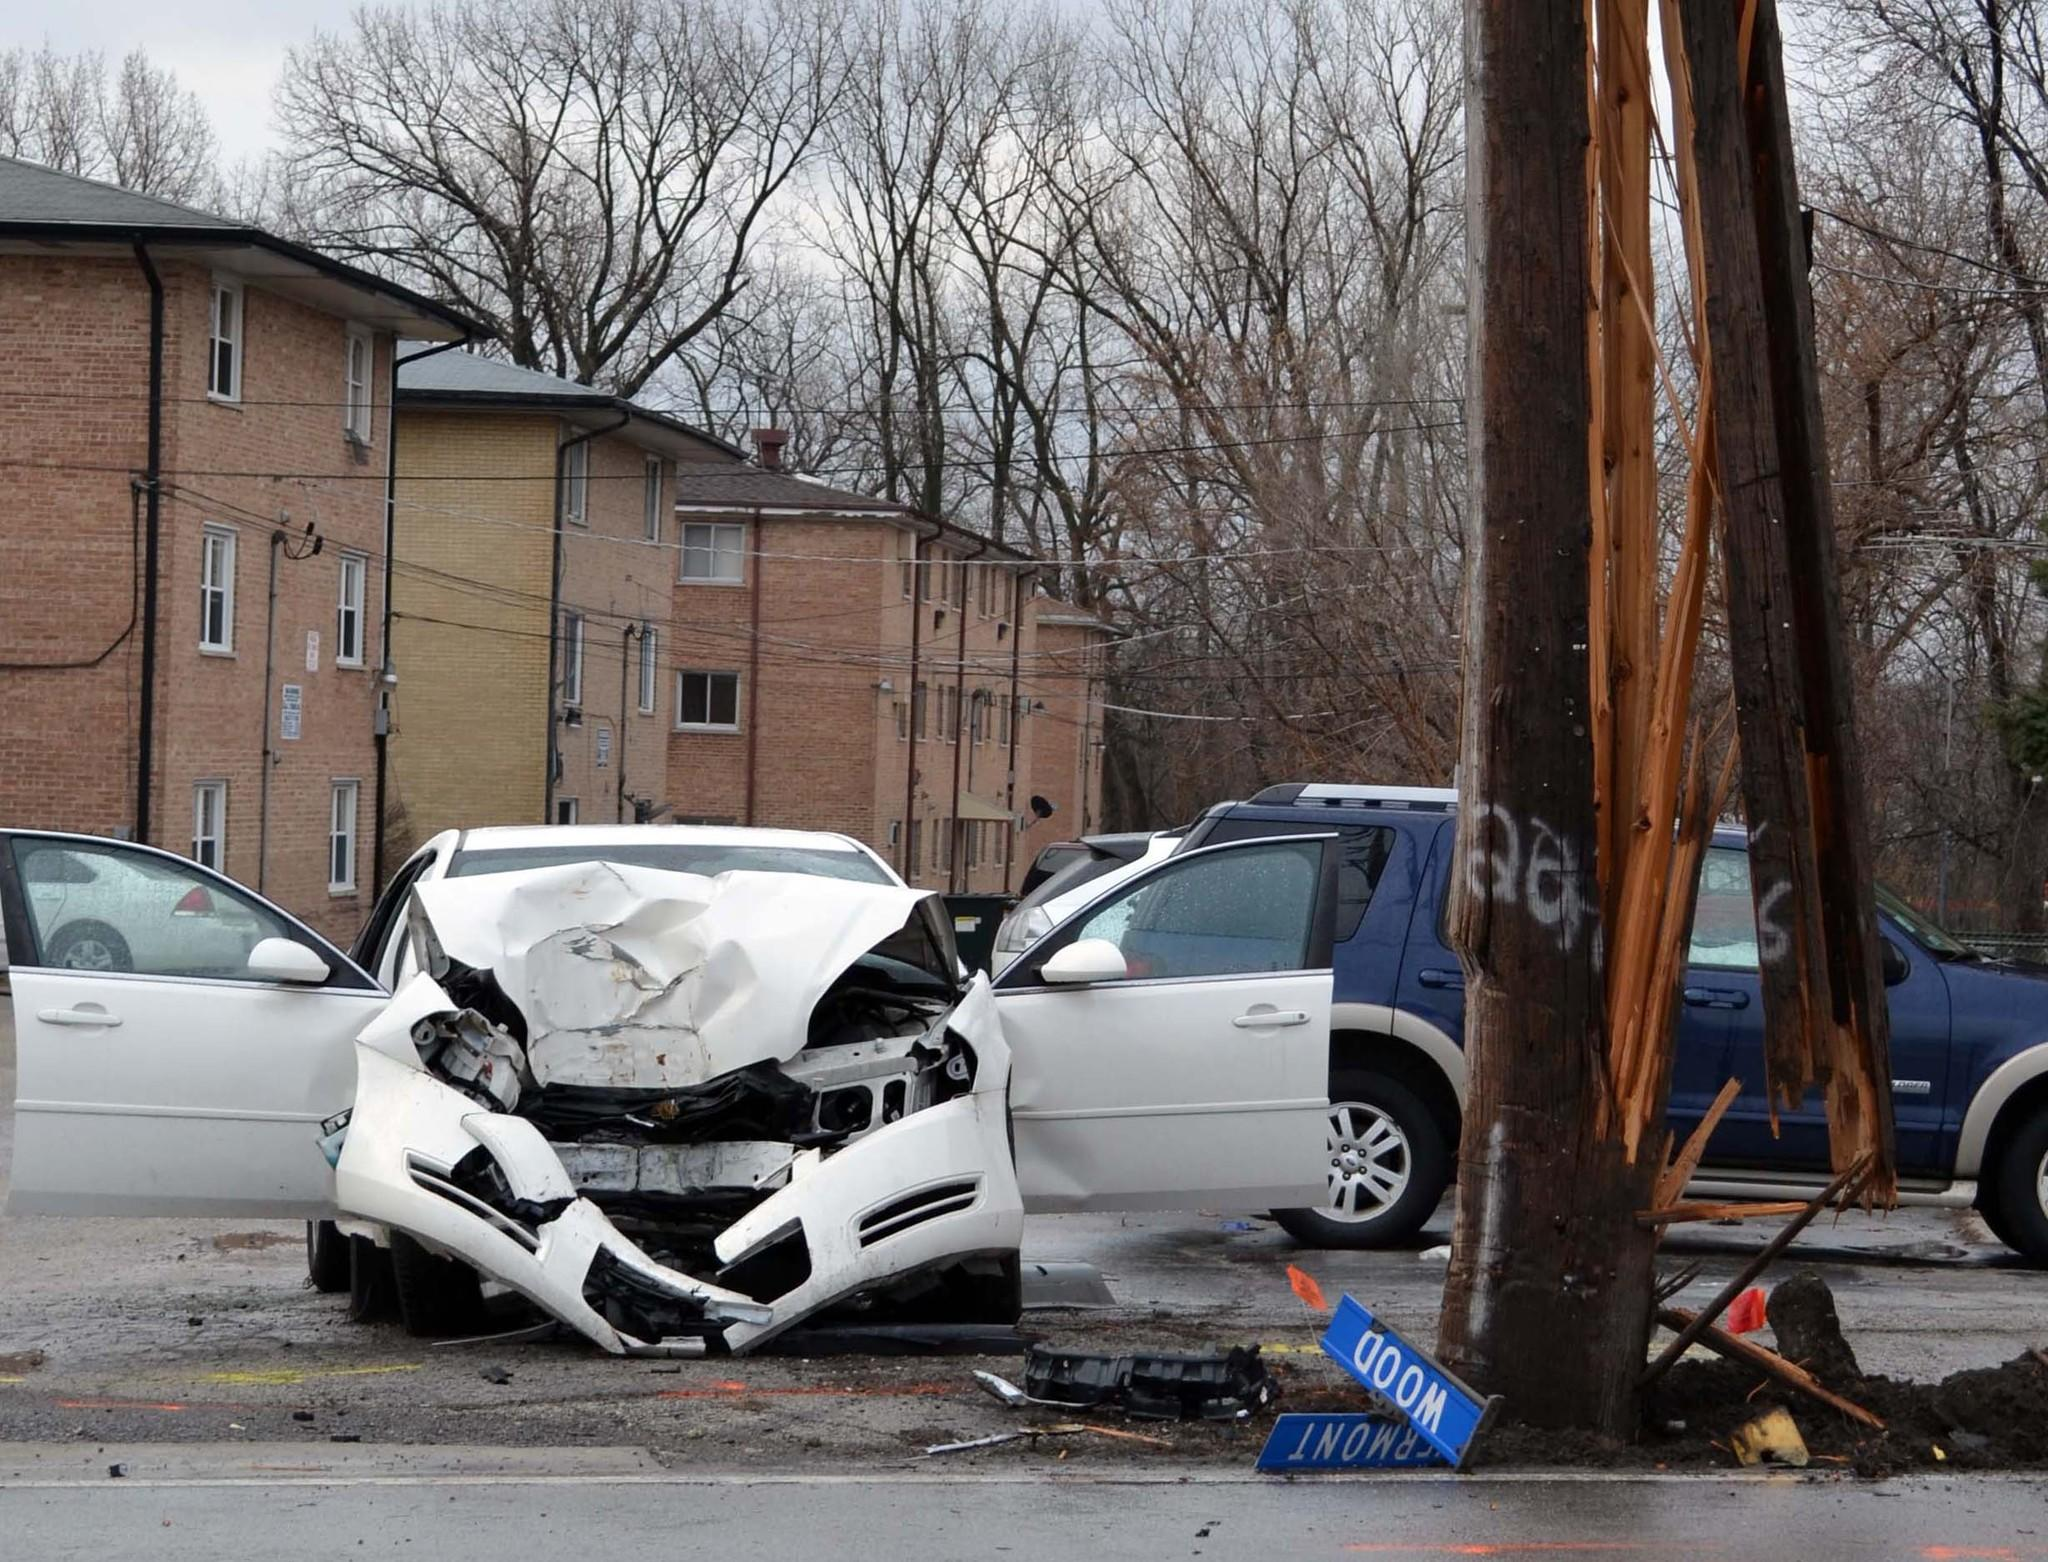 One person was injured when a car crashed into a pole near Vermont and Wood streets in south suburban Blue Island.